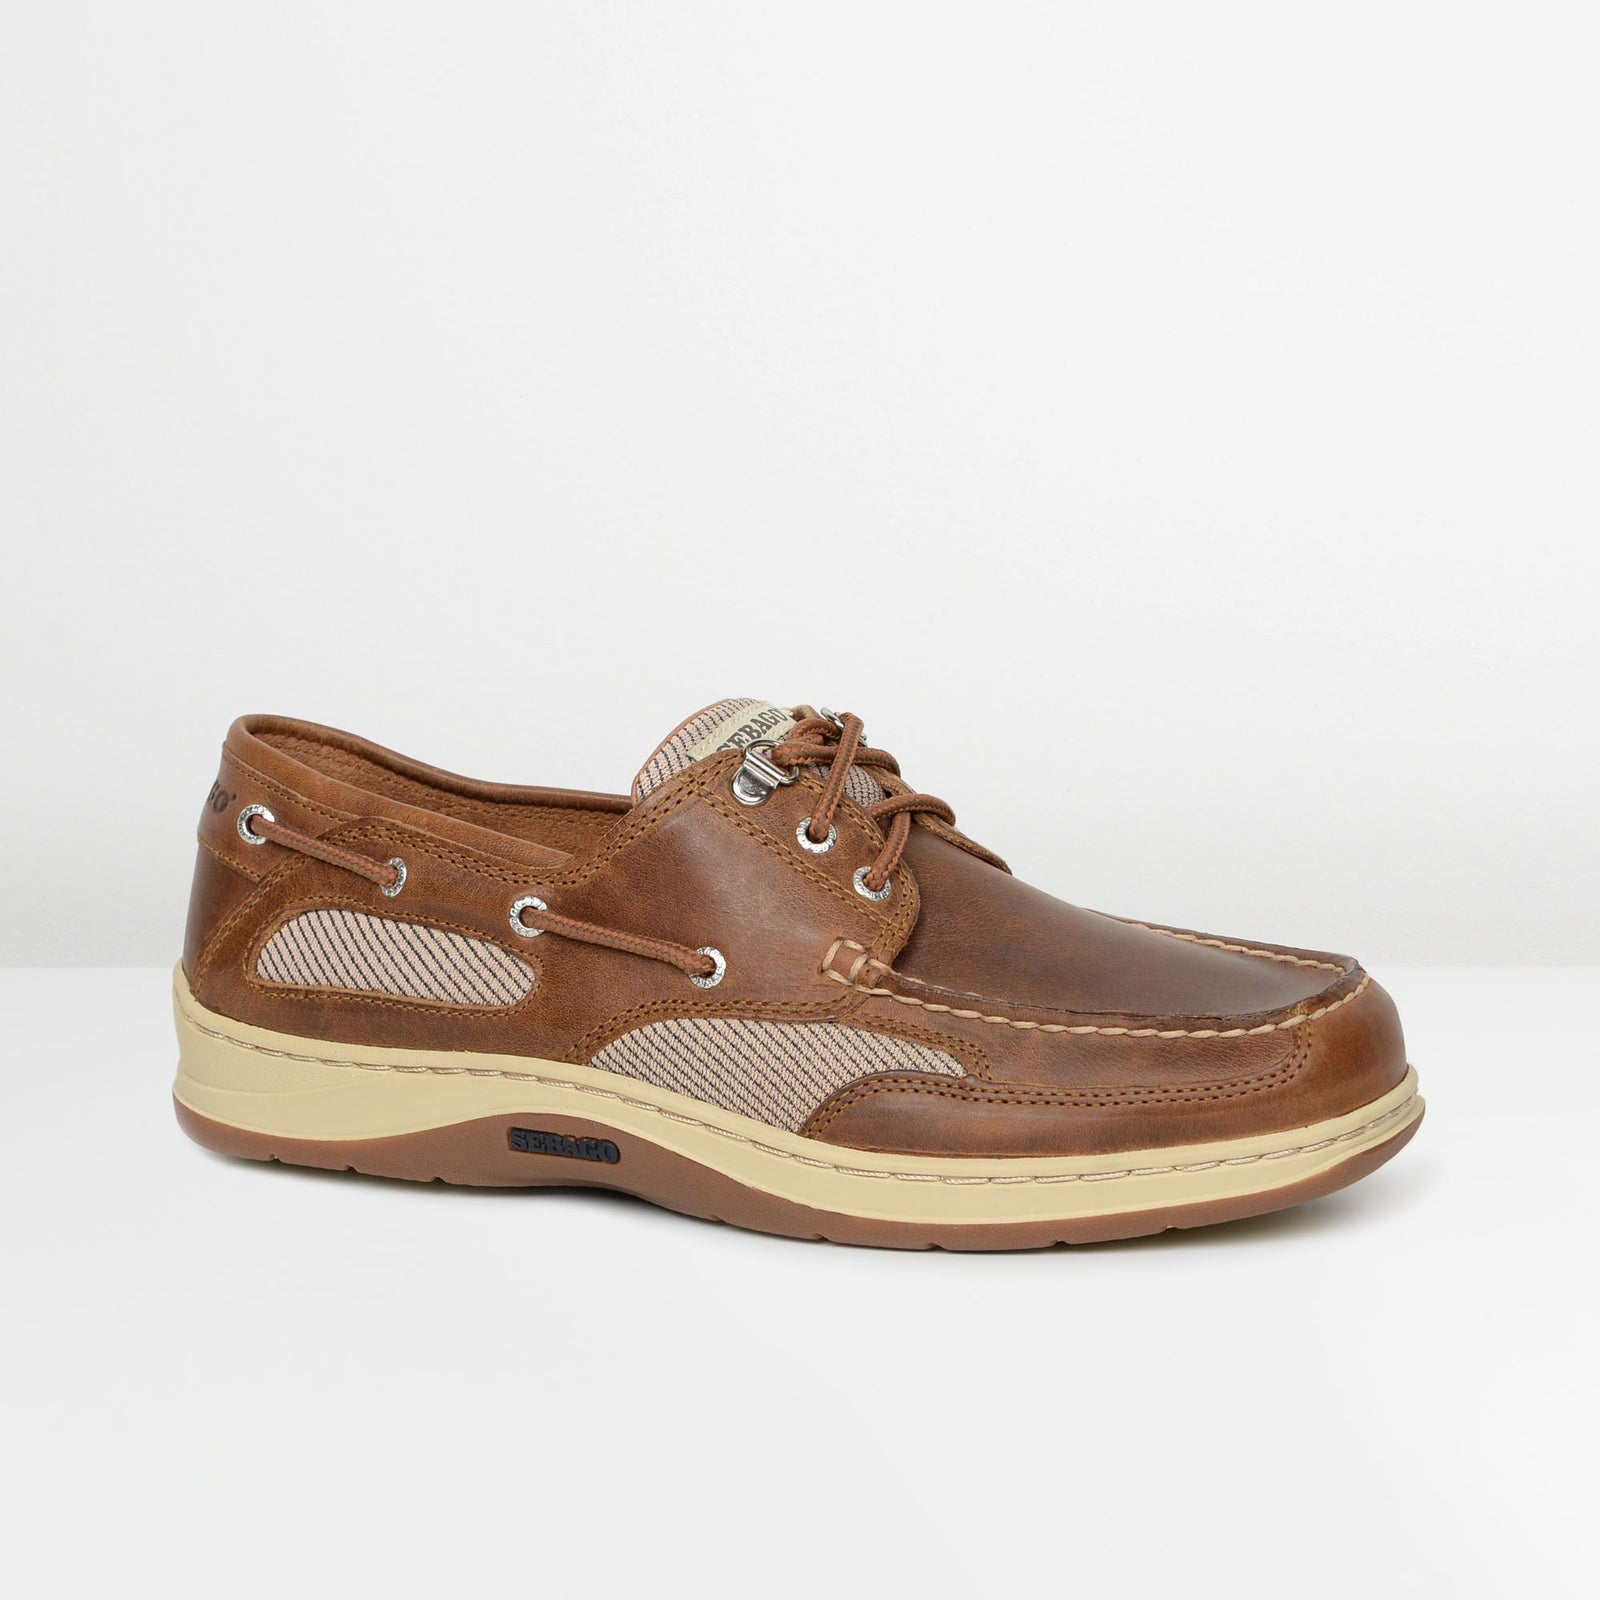 Brown Cinnamon Clovehitch Boat Shoes